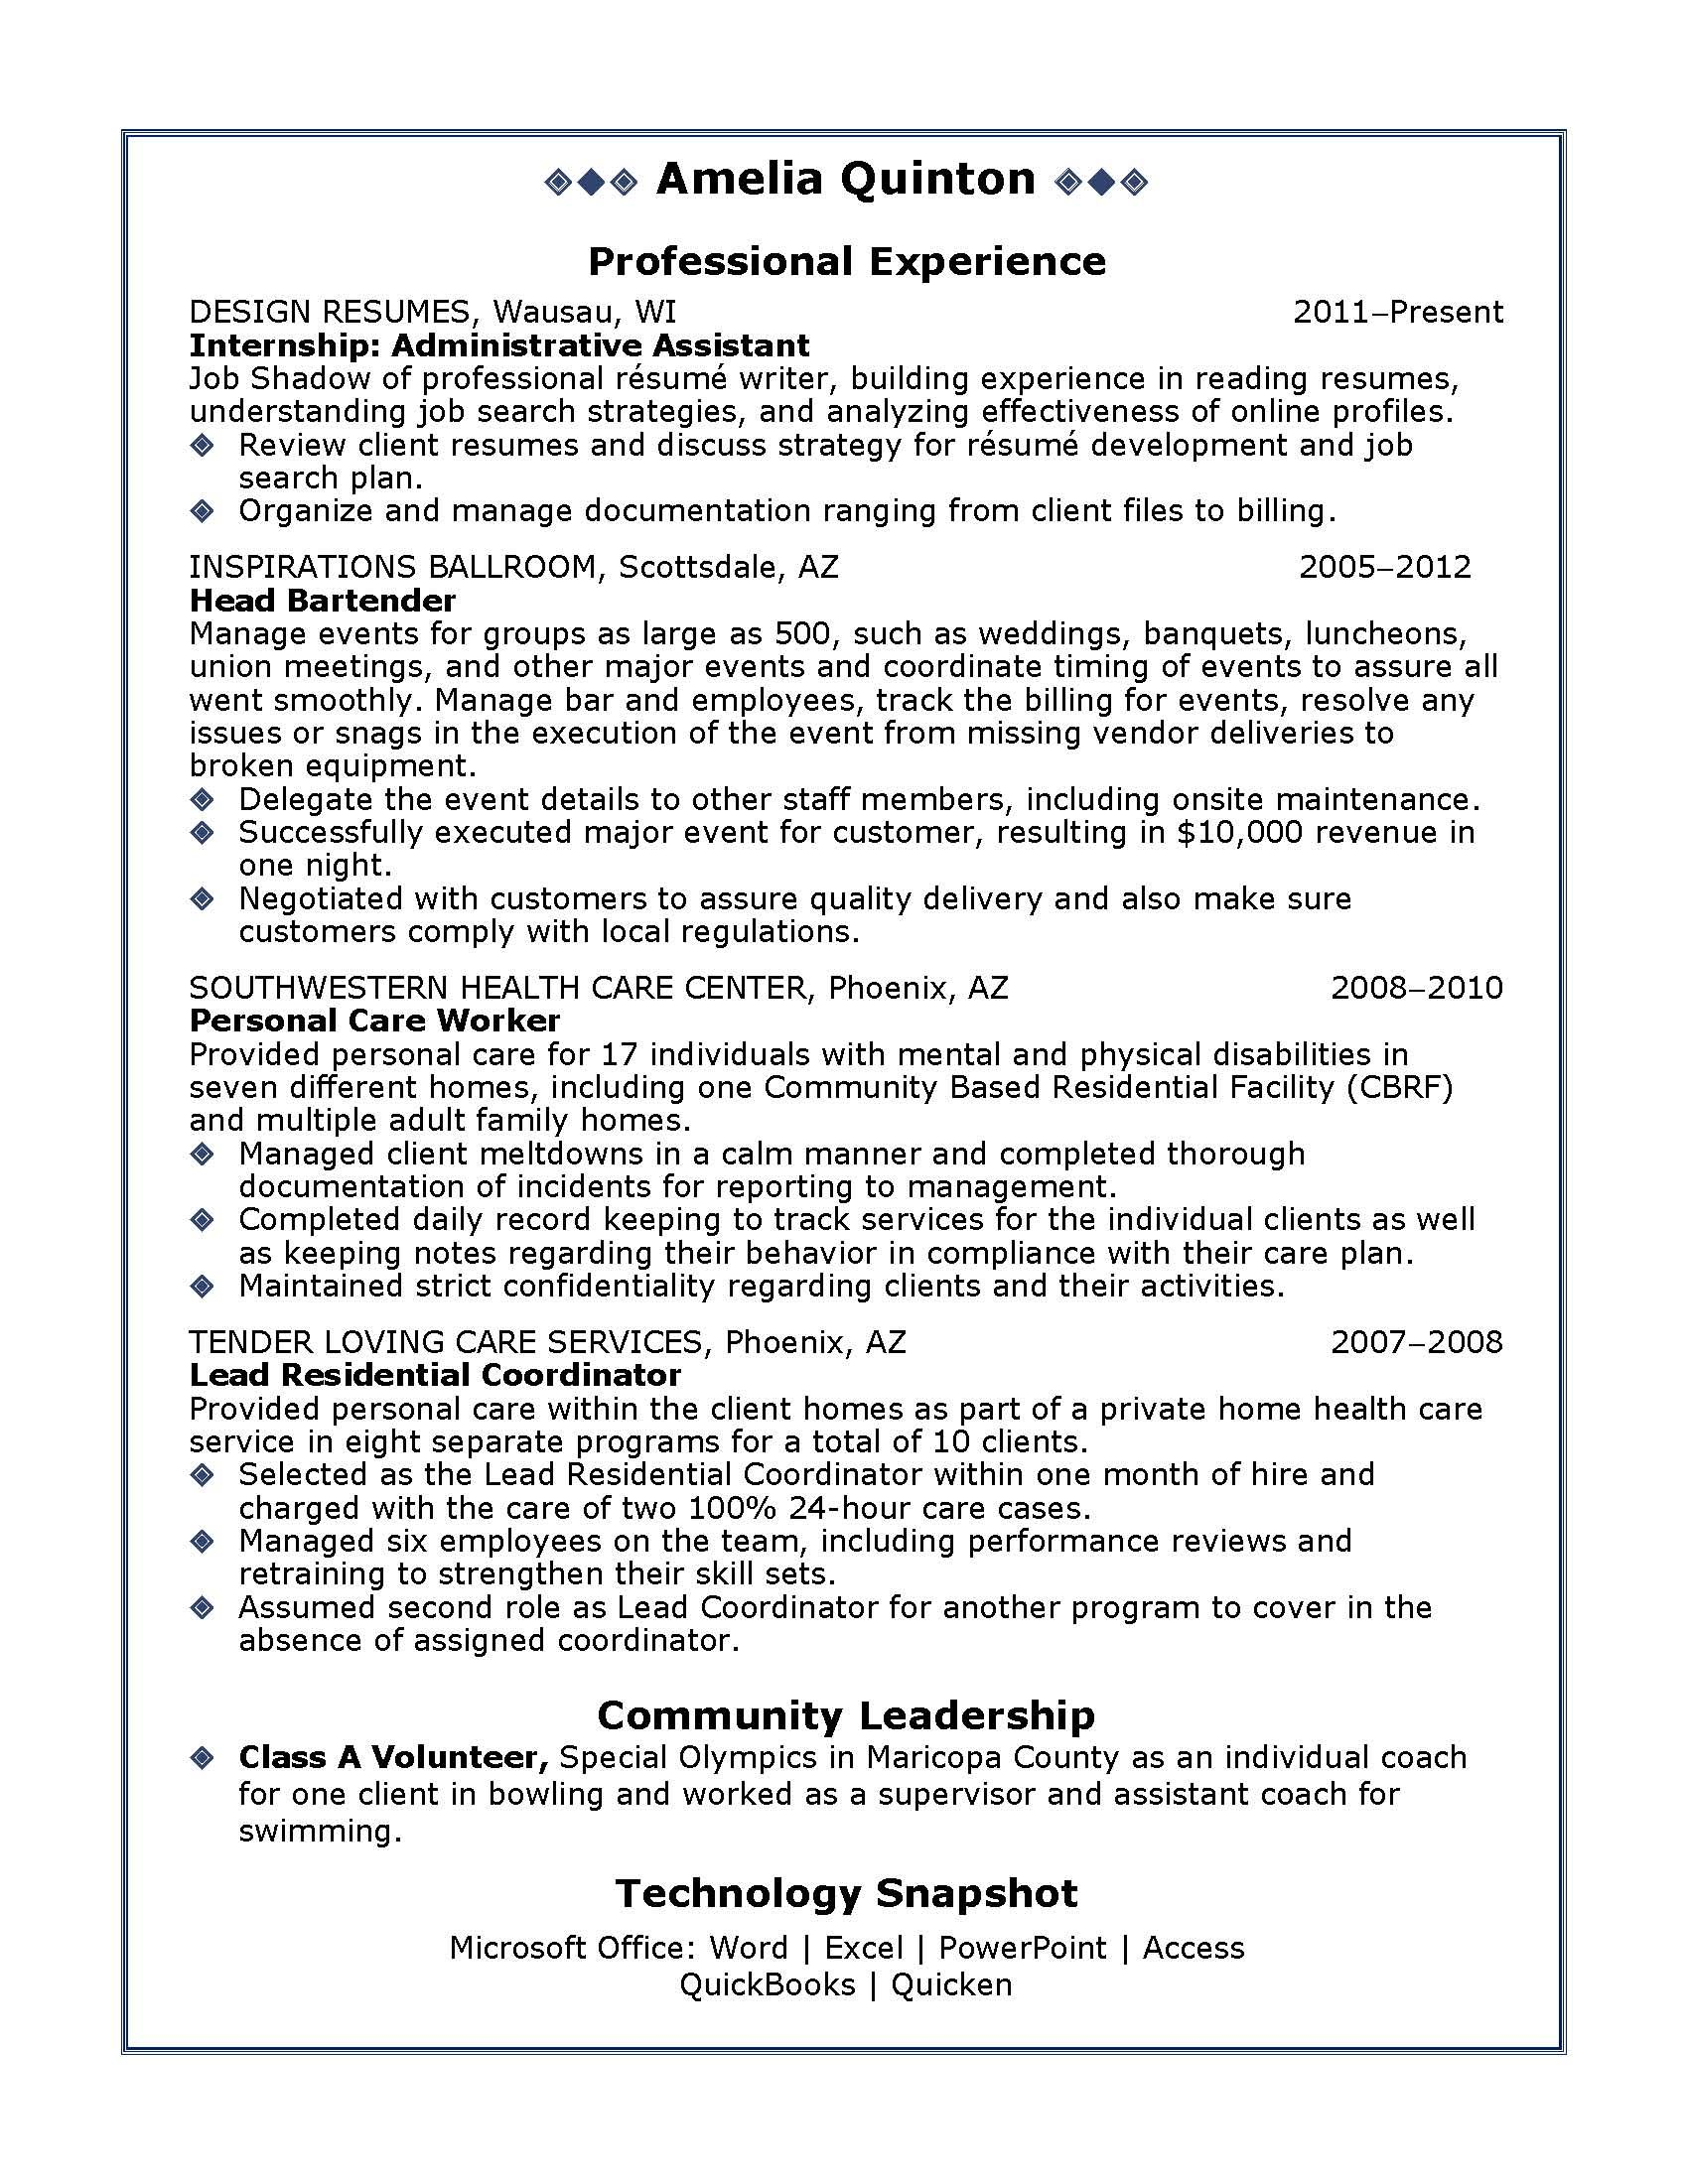 Resume Templates For Recent College Graduates Pinjobresume On Resume Career Termplate Free  Pinterest